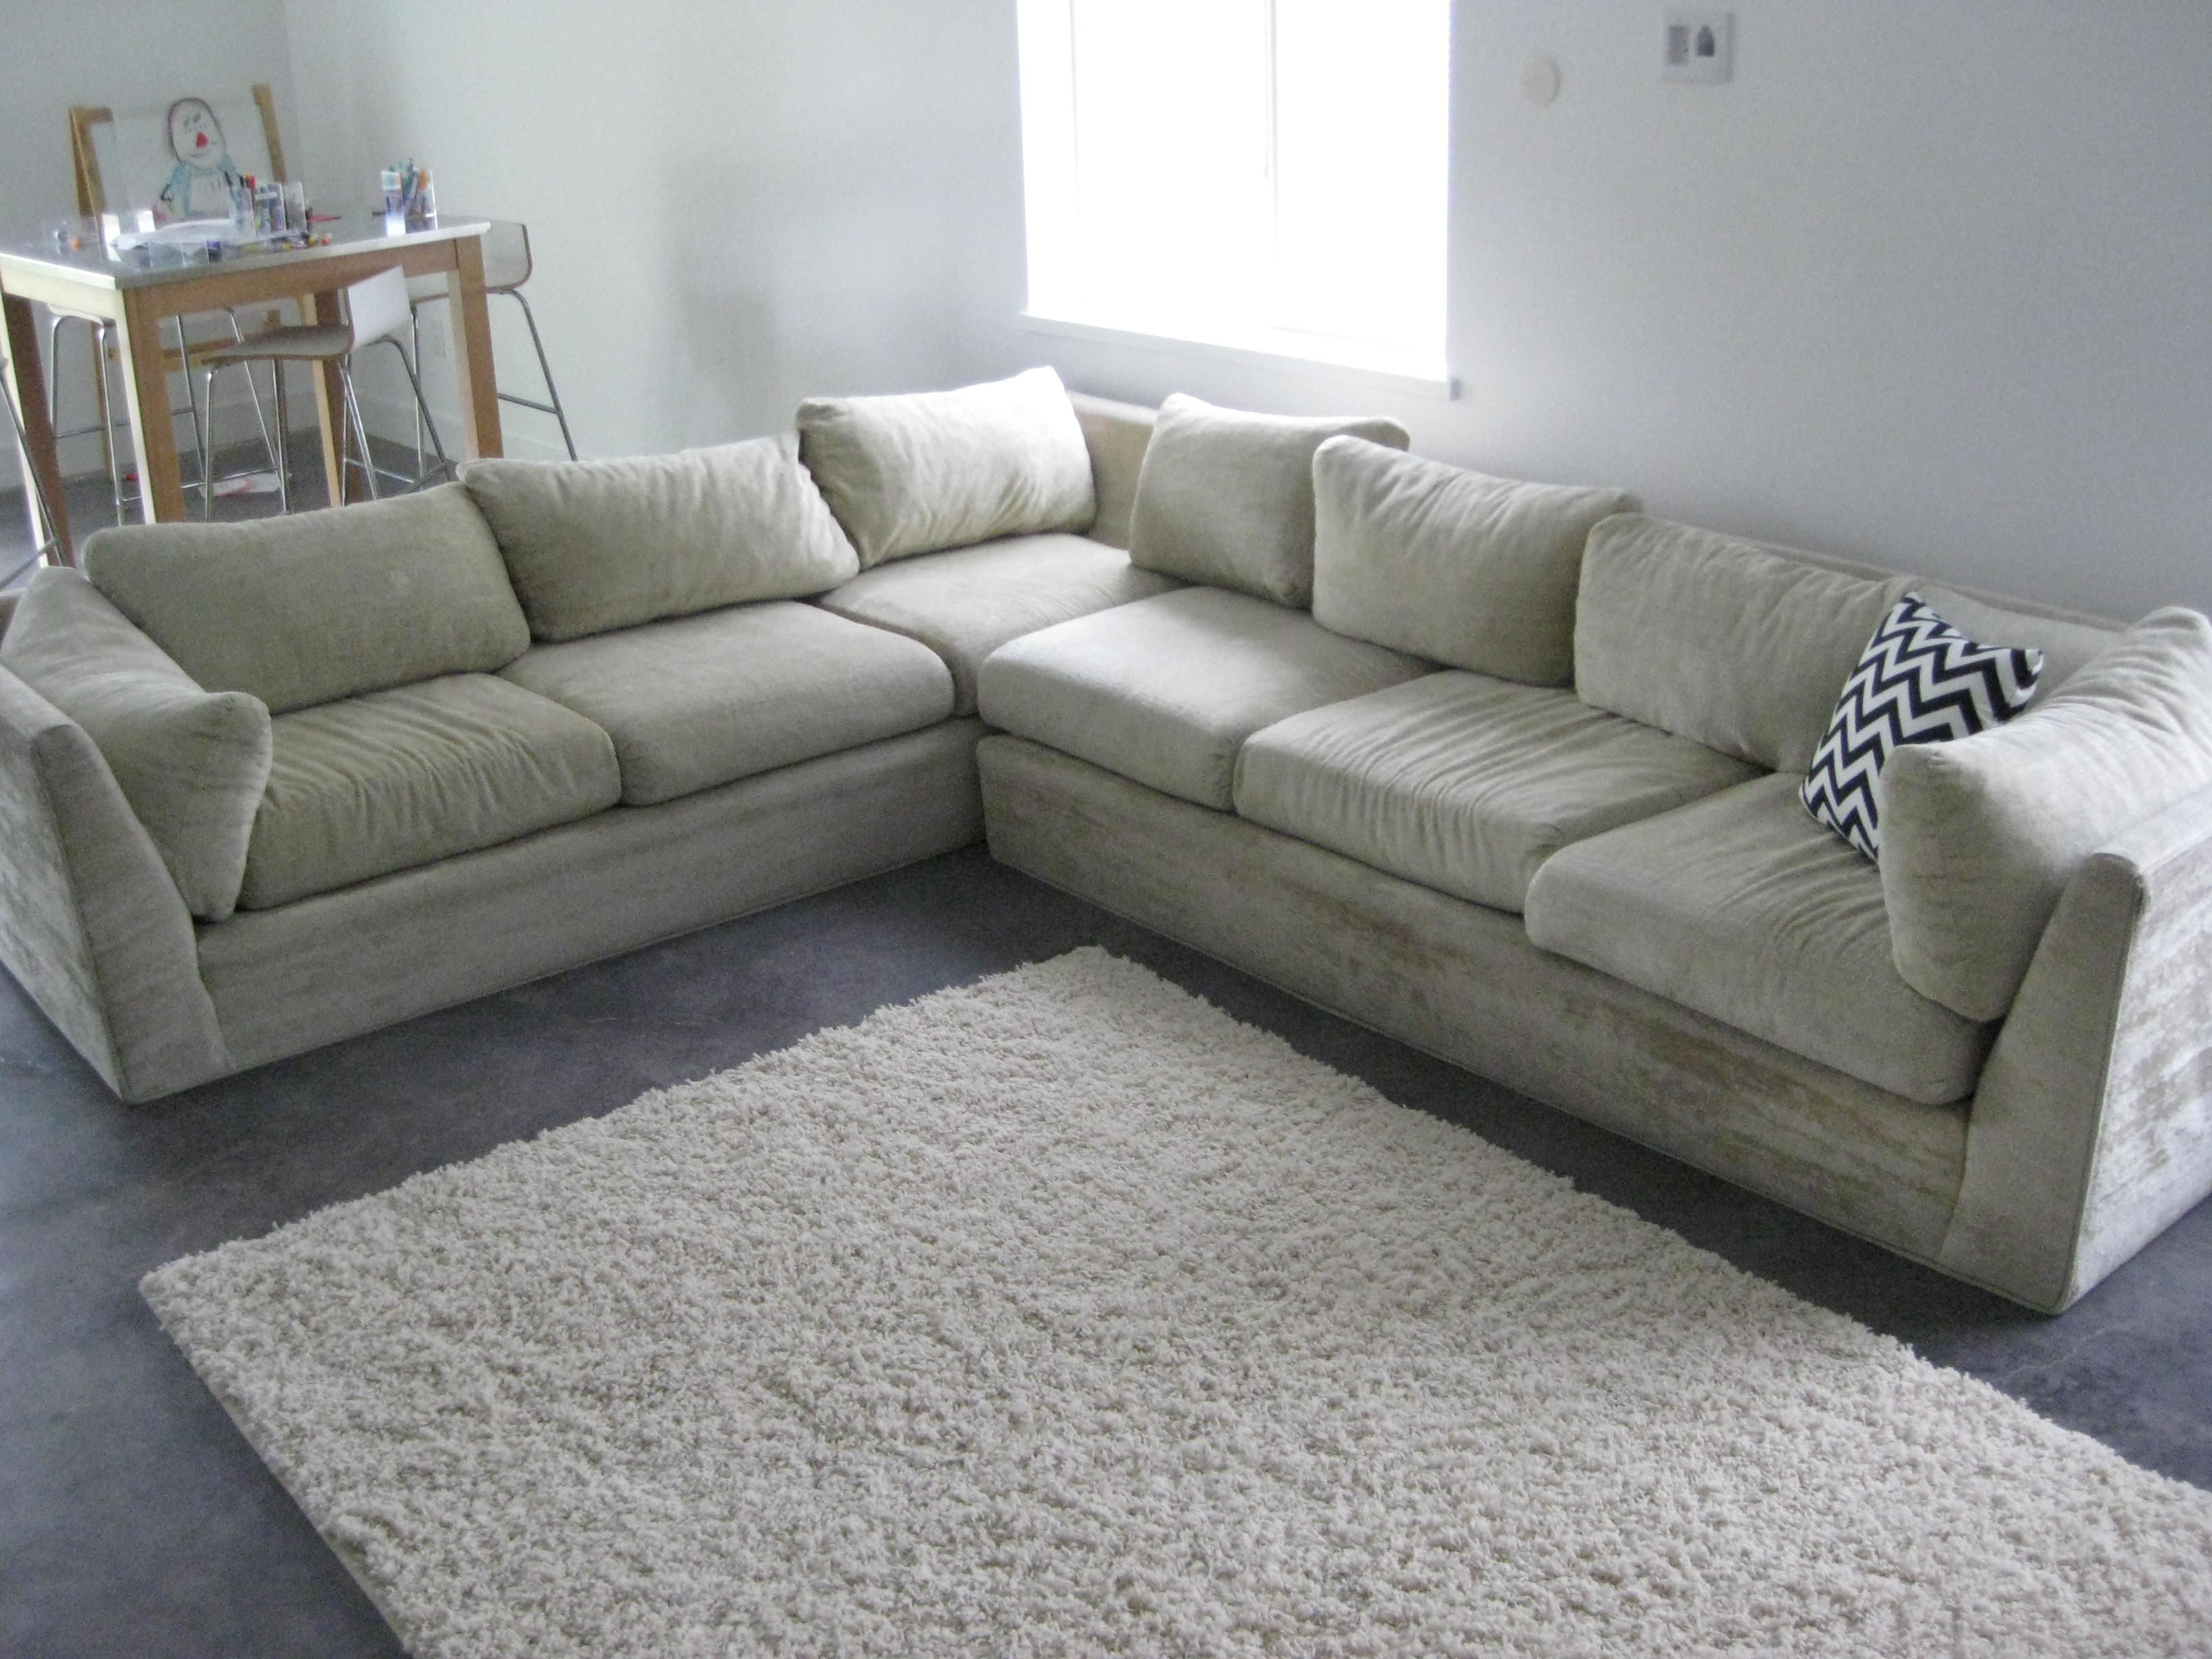 40 Year Old Sofa Sectional Reupholstered